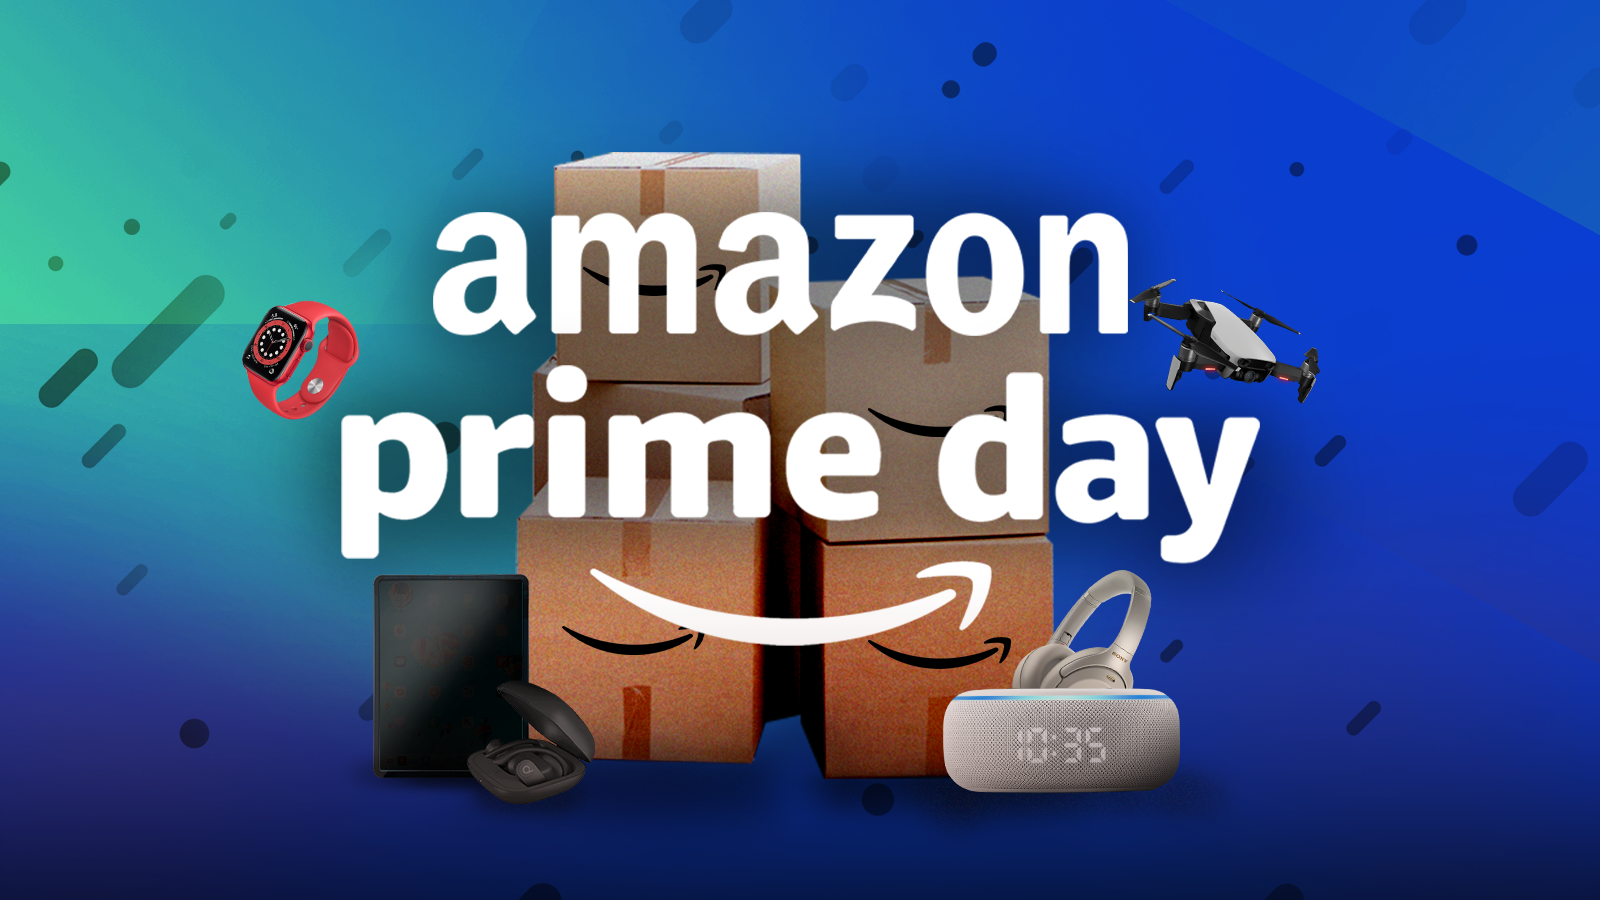 Amazon Prime Day 2020 Uk Last Deals Still Available On Phones Cameras Headphones And More Cnet